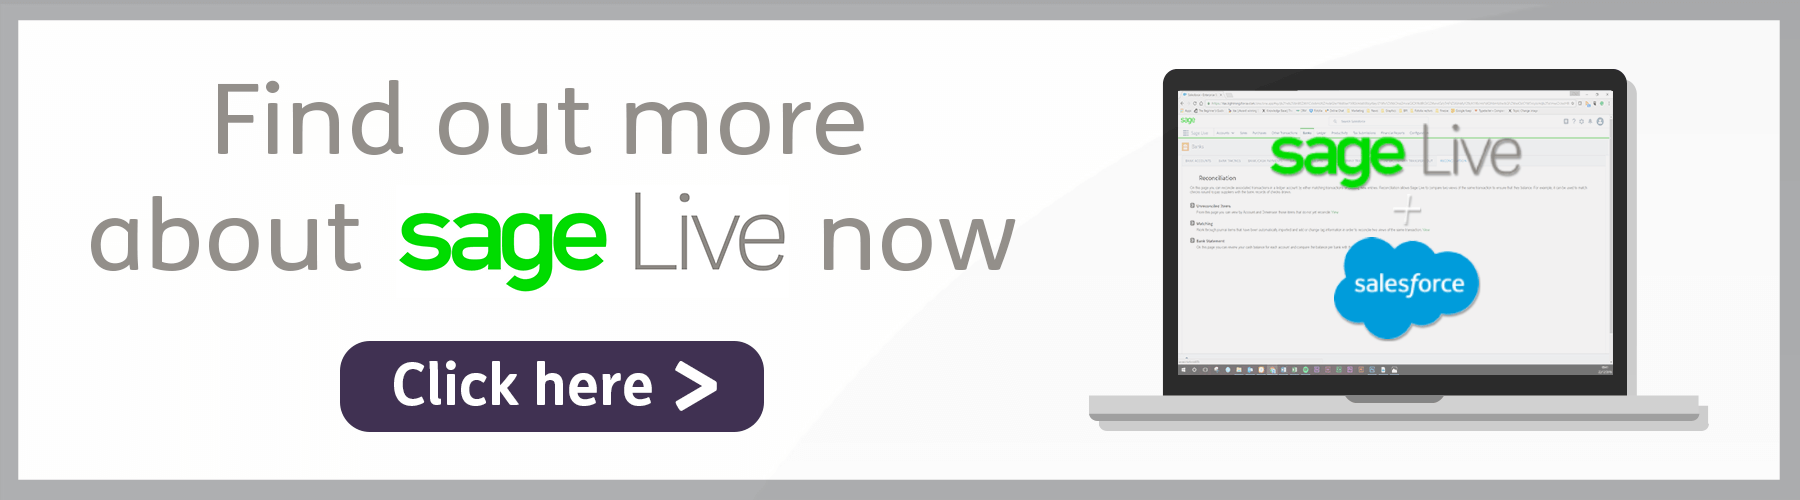 Less process time, more online shopping time with Sage Live! - Sage UK